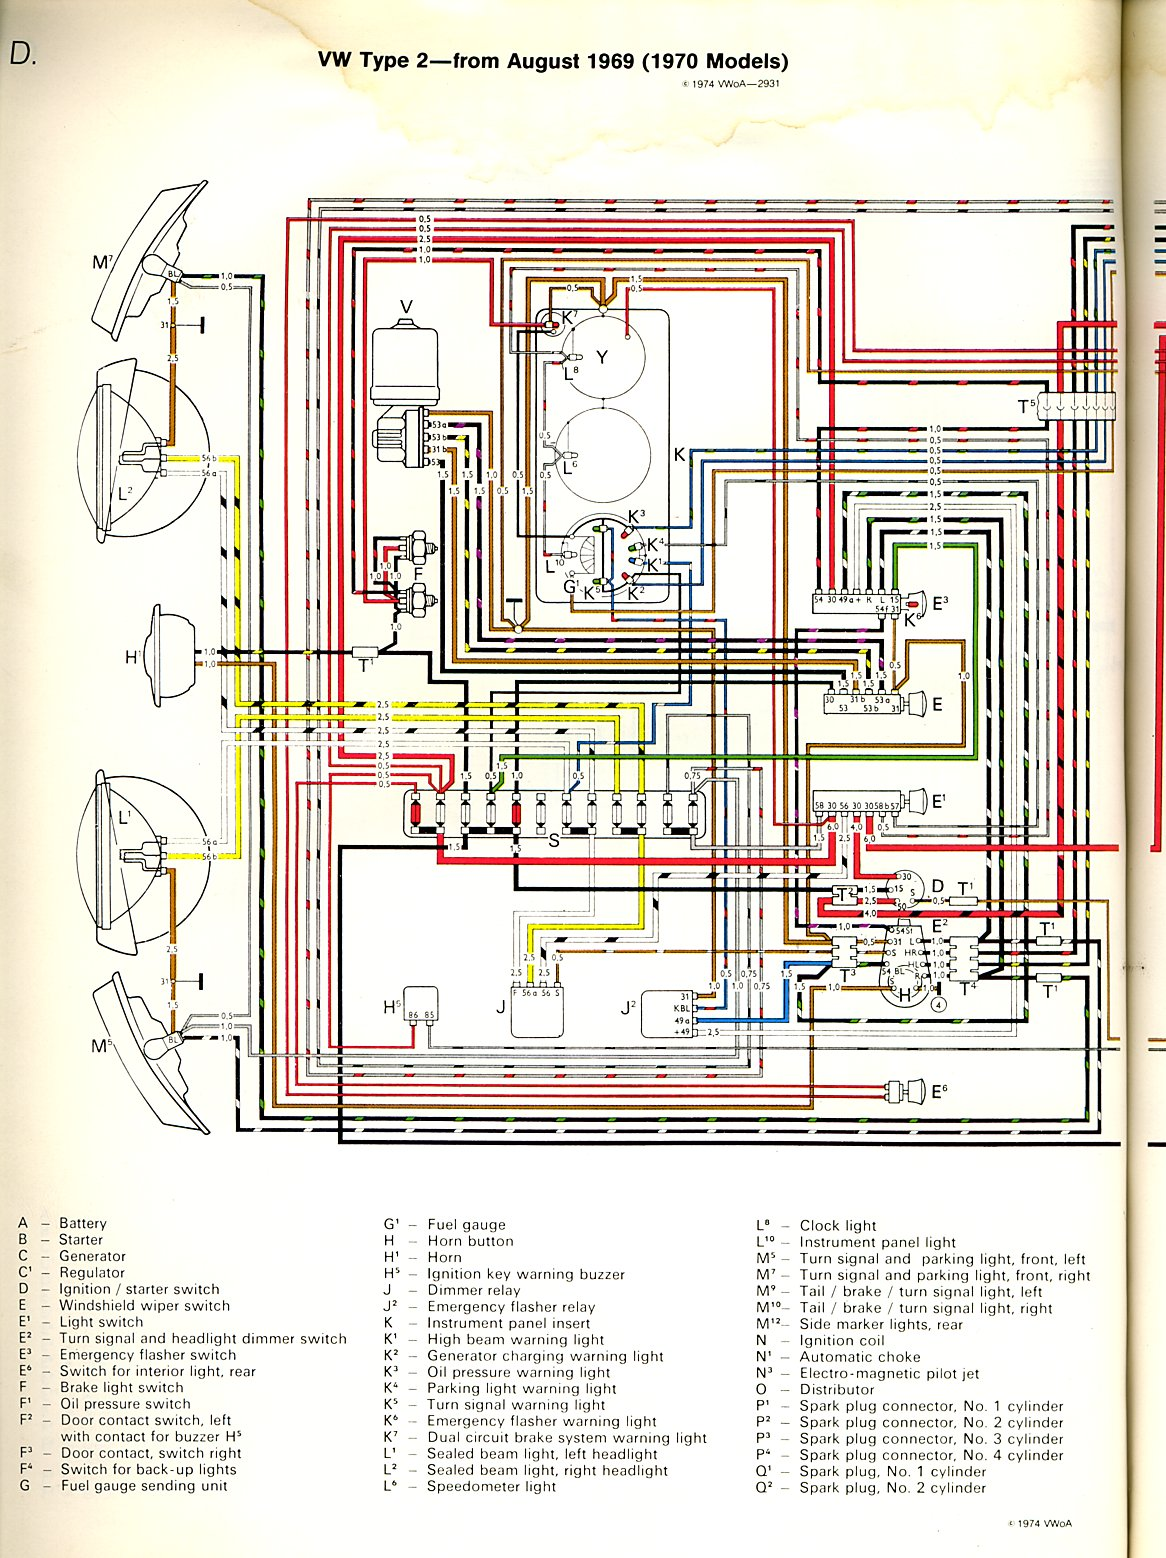 baybus_70a vw bus wiring diagram 1965 vw bus wiring diagram \u2022 wiring diagrams 1965 vw beetle wiring diagram at mifinder.co